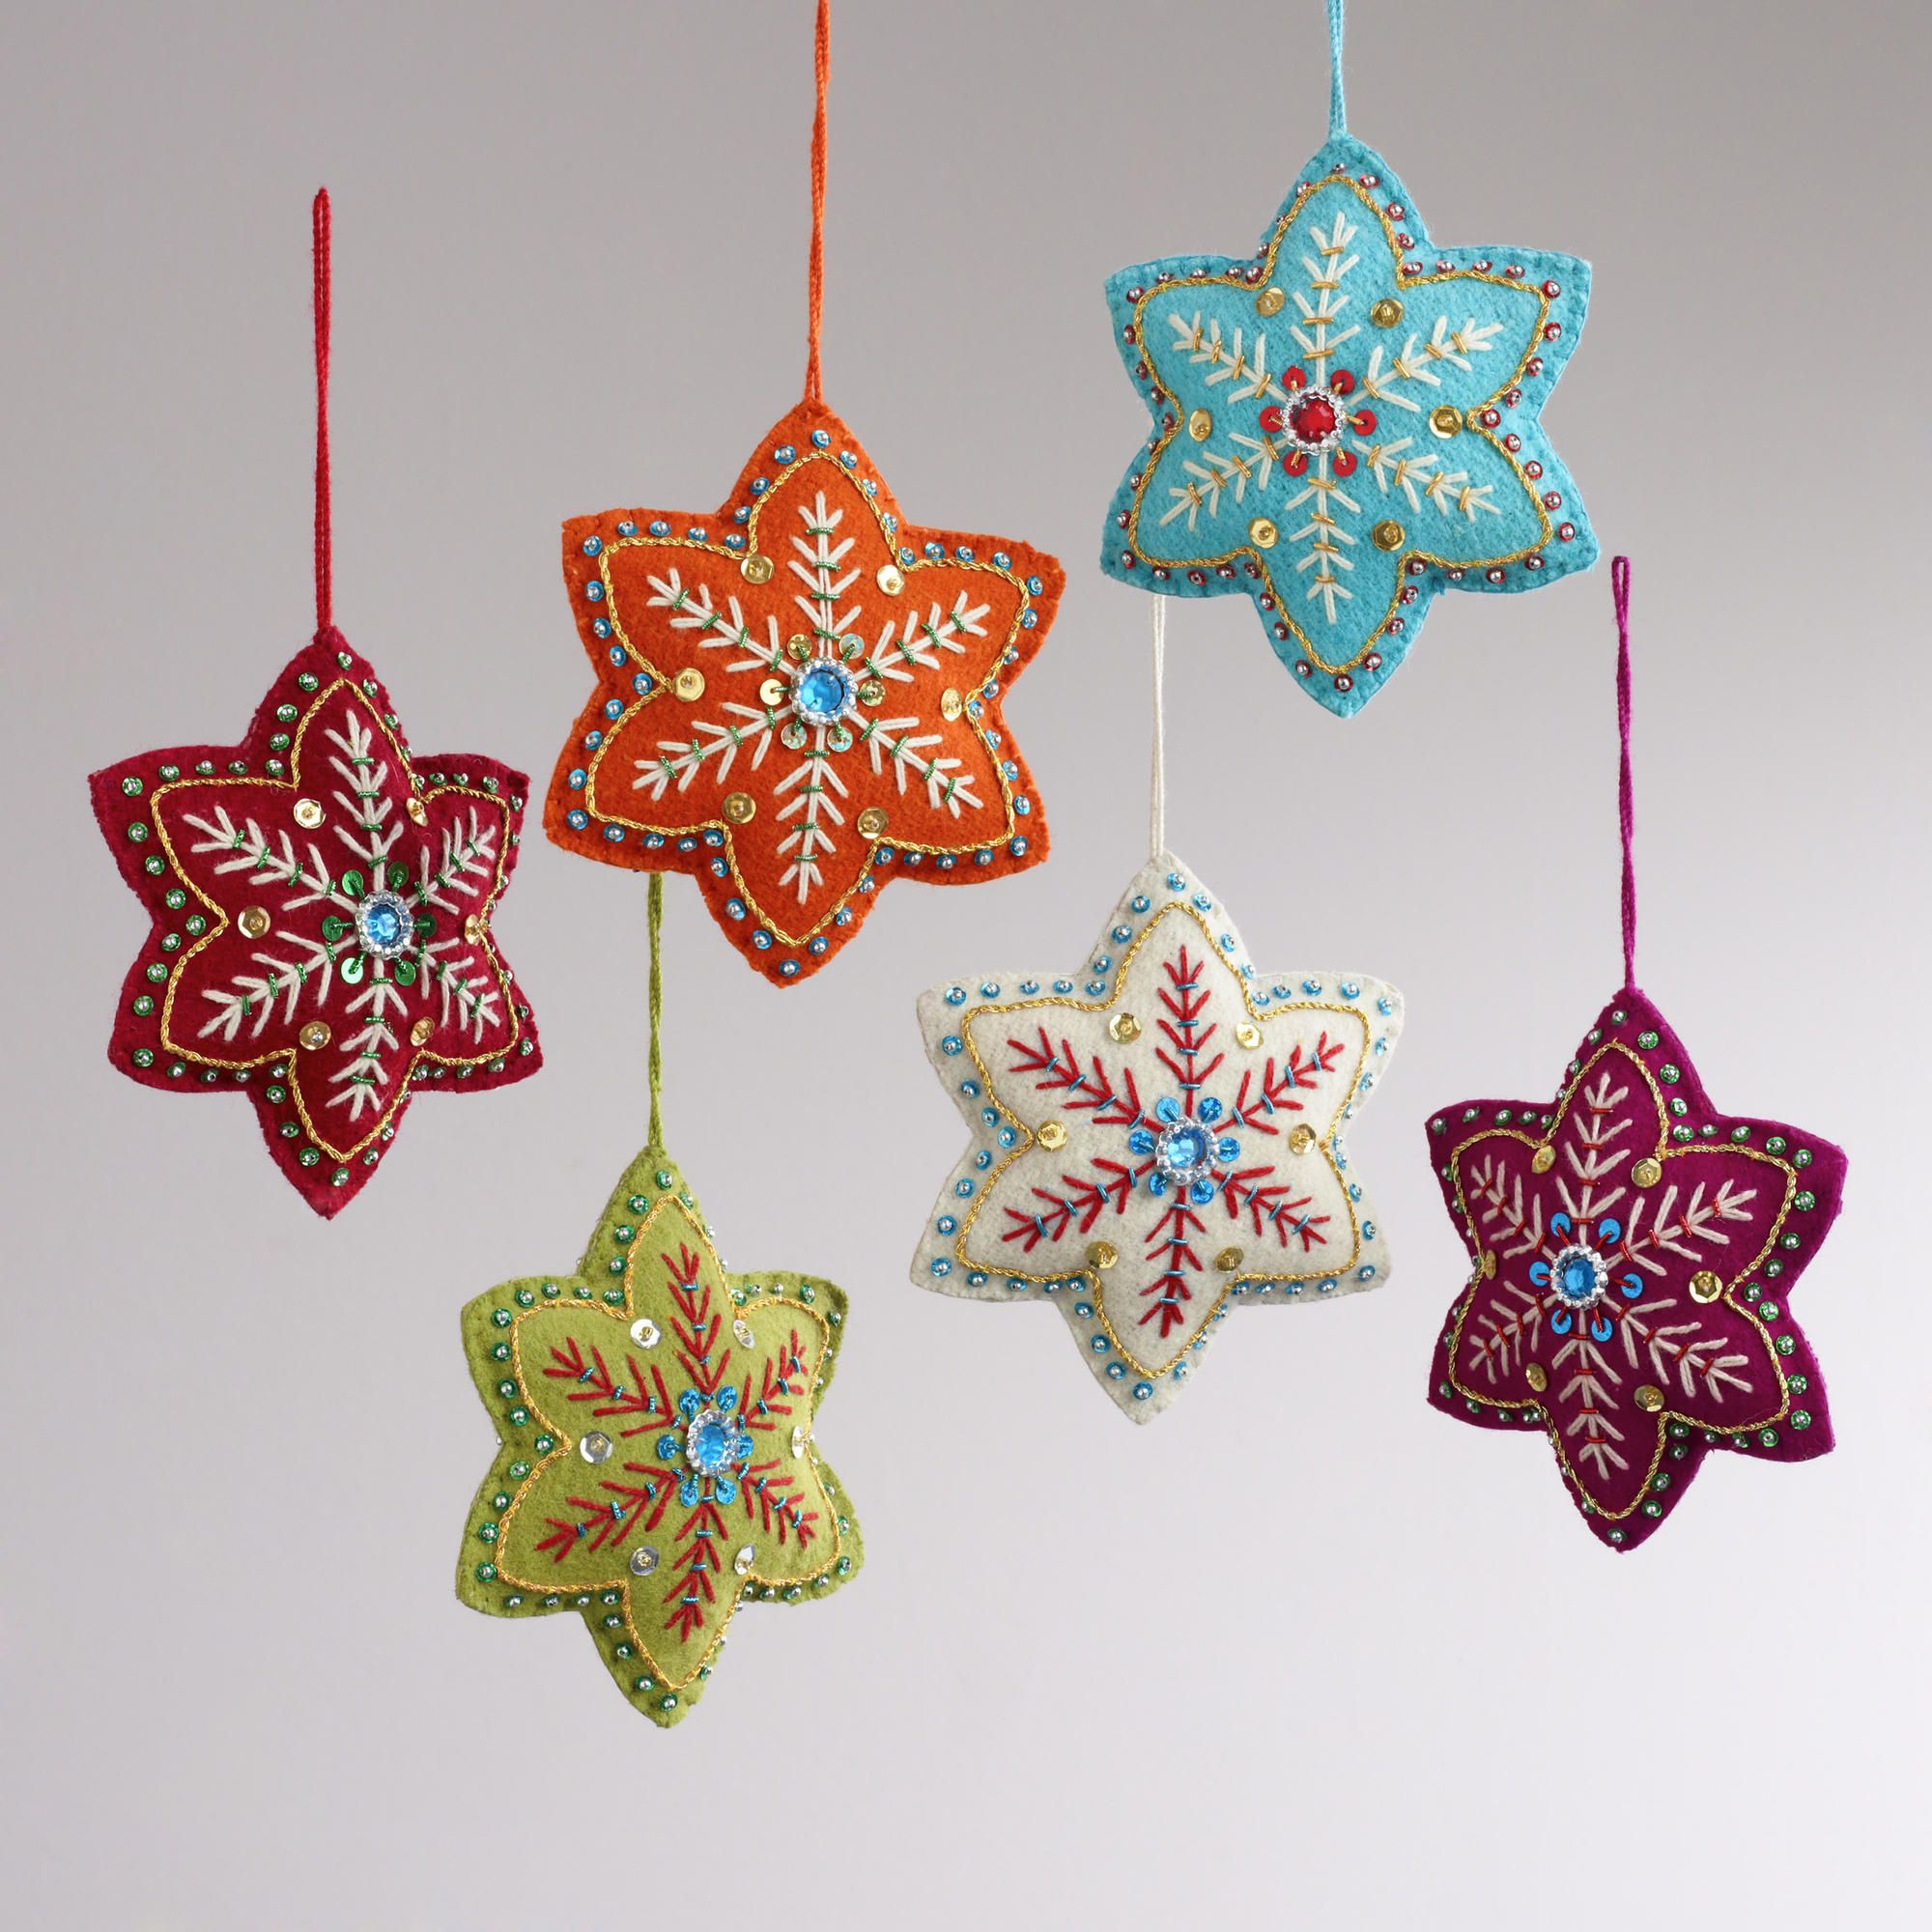 Embroidered christmas ornaments - Embroidered Felt 6 Pointed Star Ornaments Set Of 6